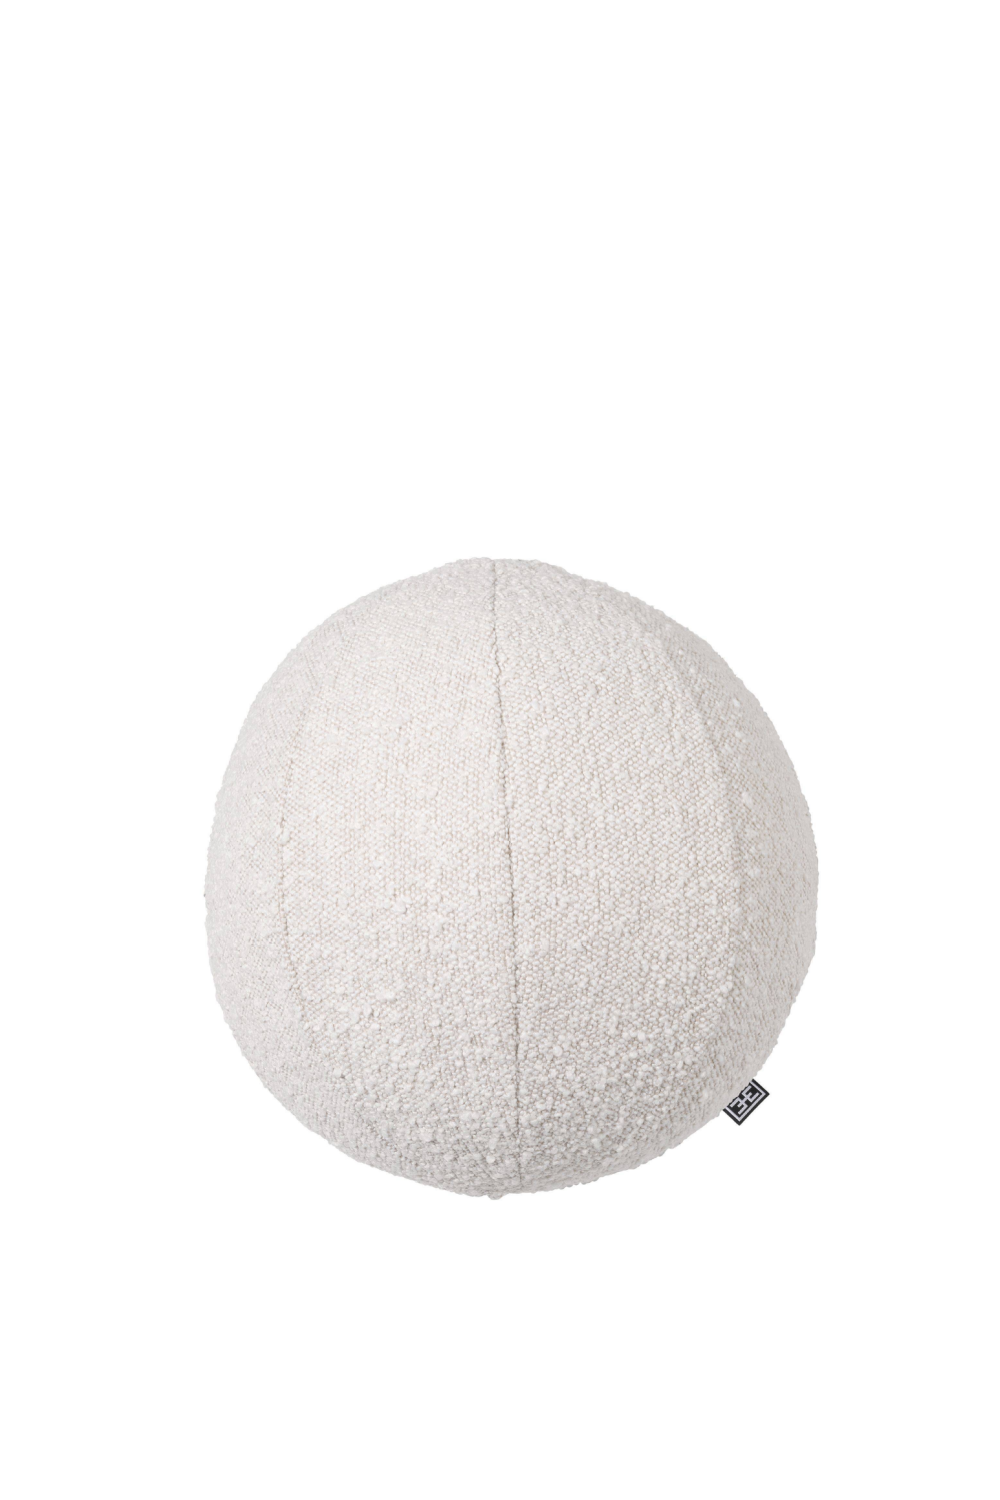 Boucle Cream Ball Shaped Pillow - Eichholtz Palla S